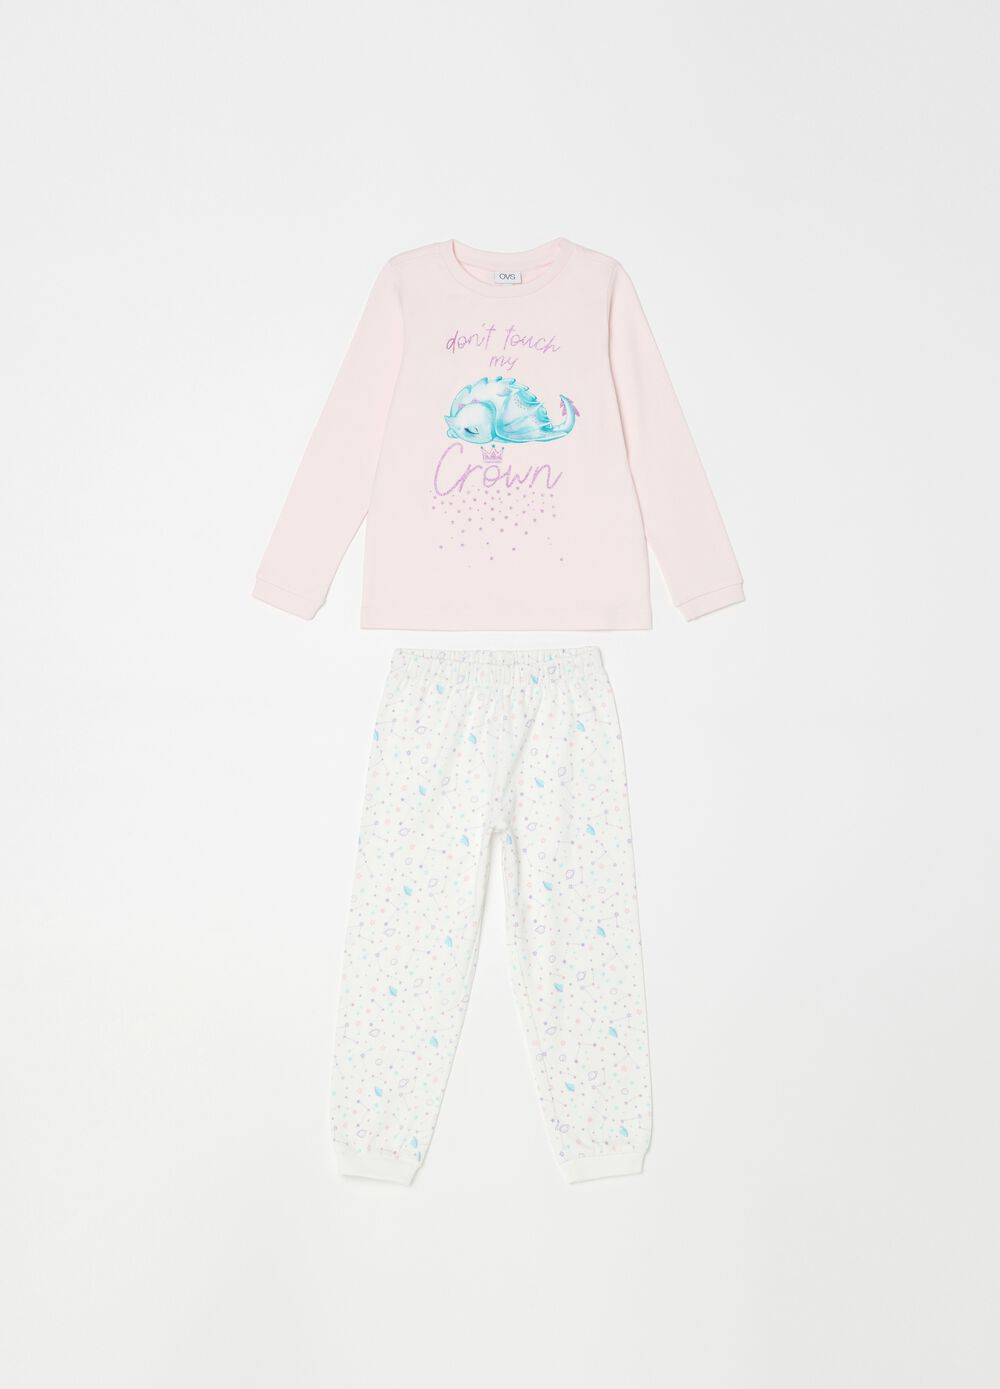 100% organic cotton pyjamas with pattern and print